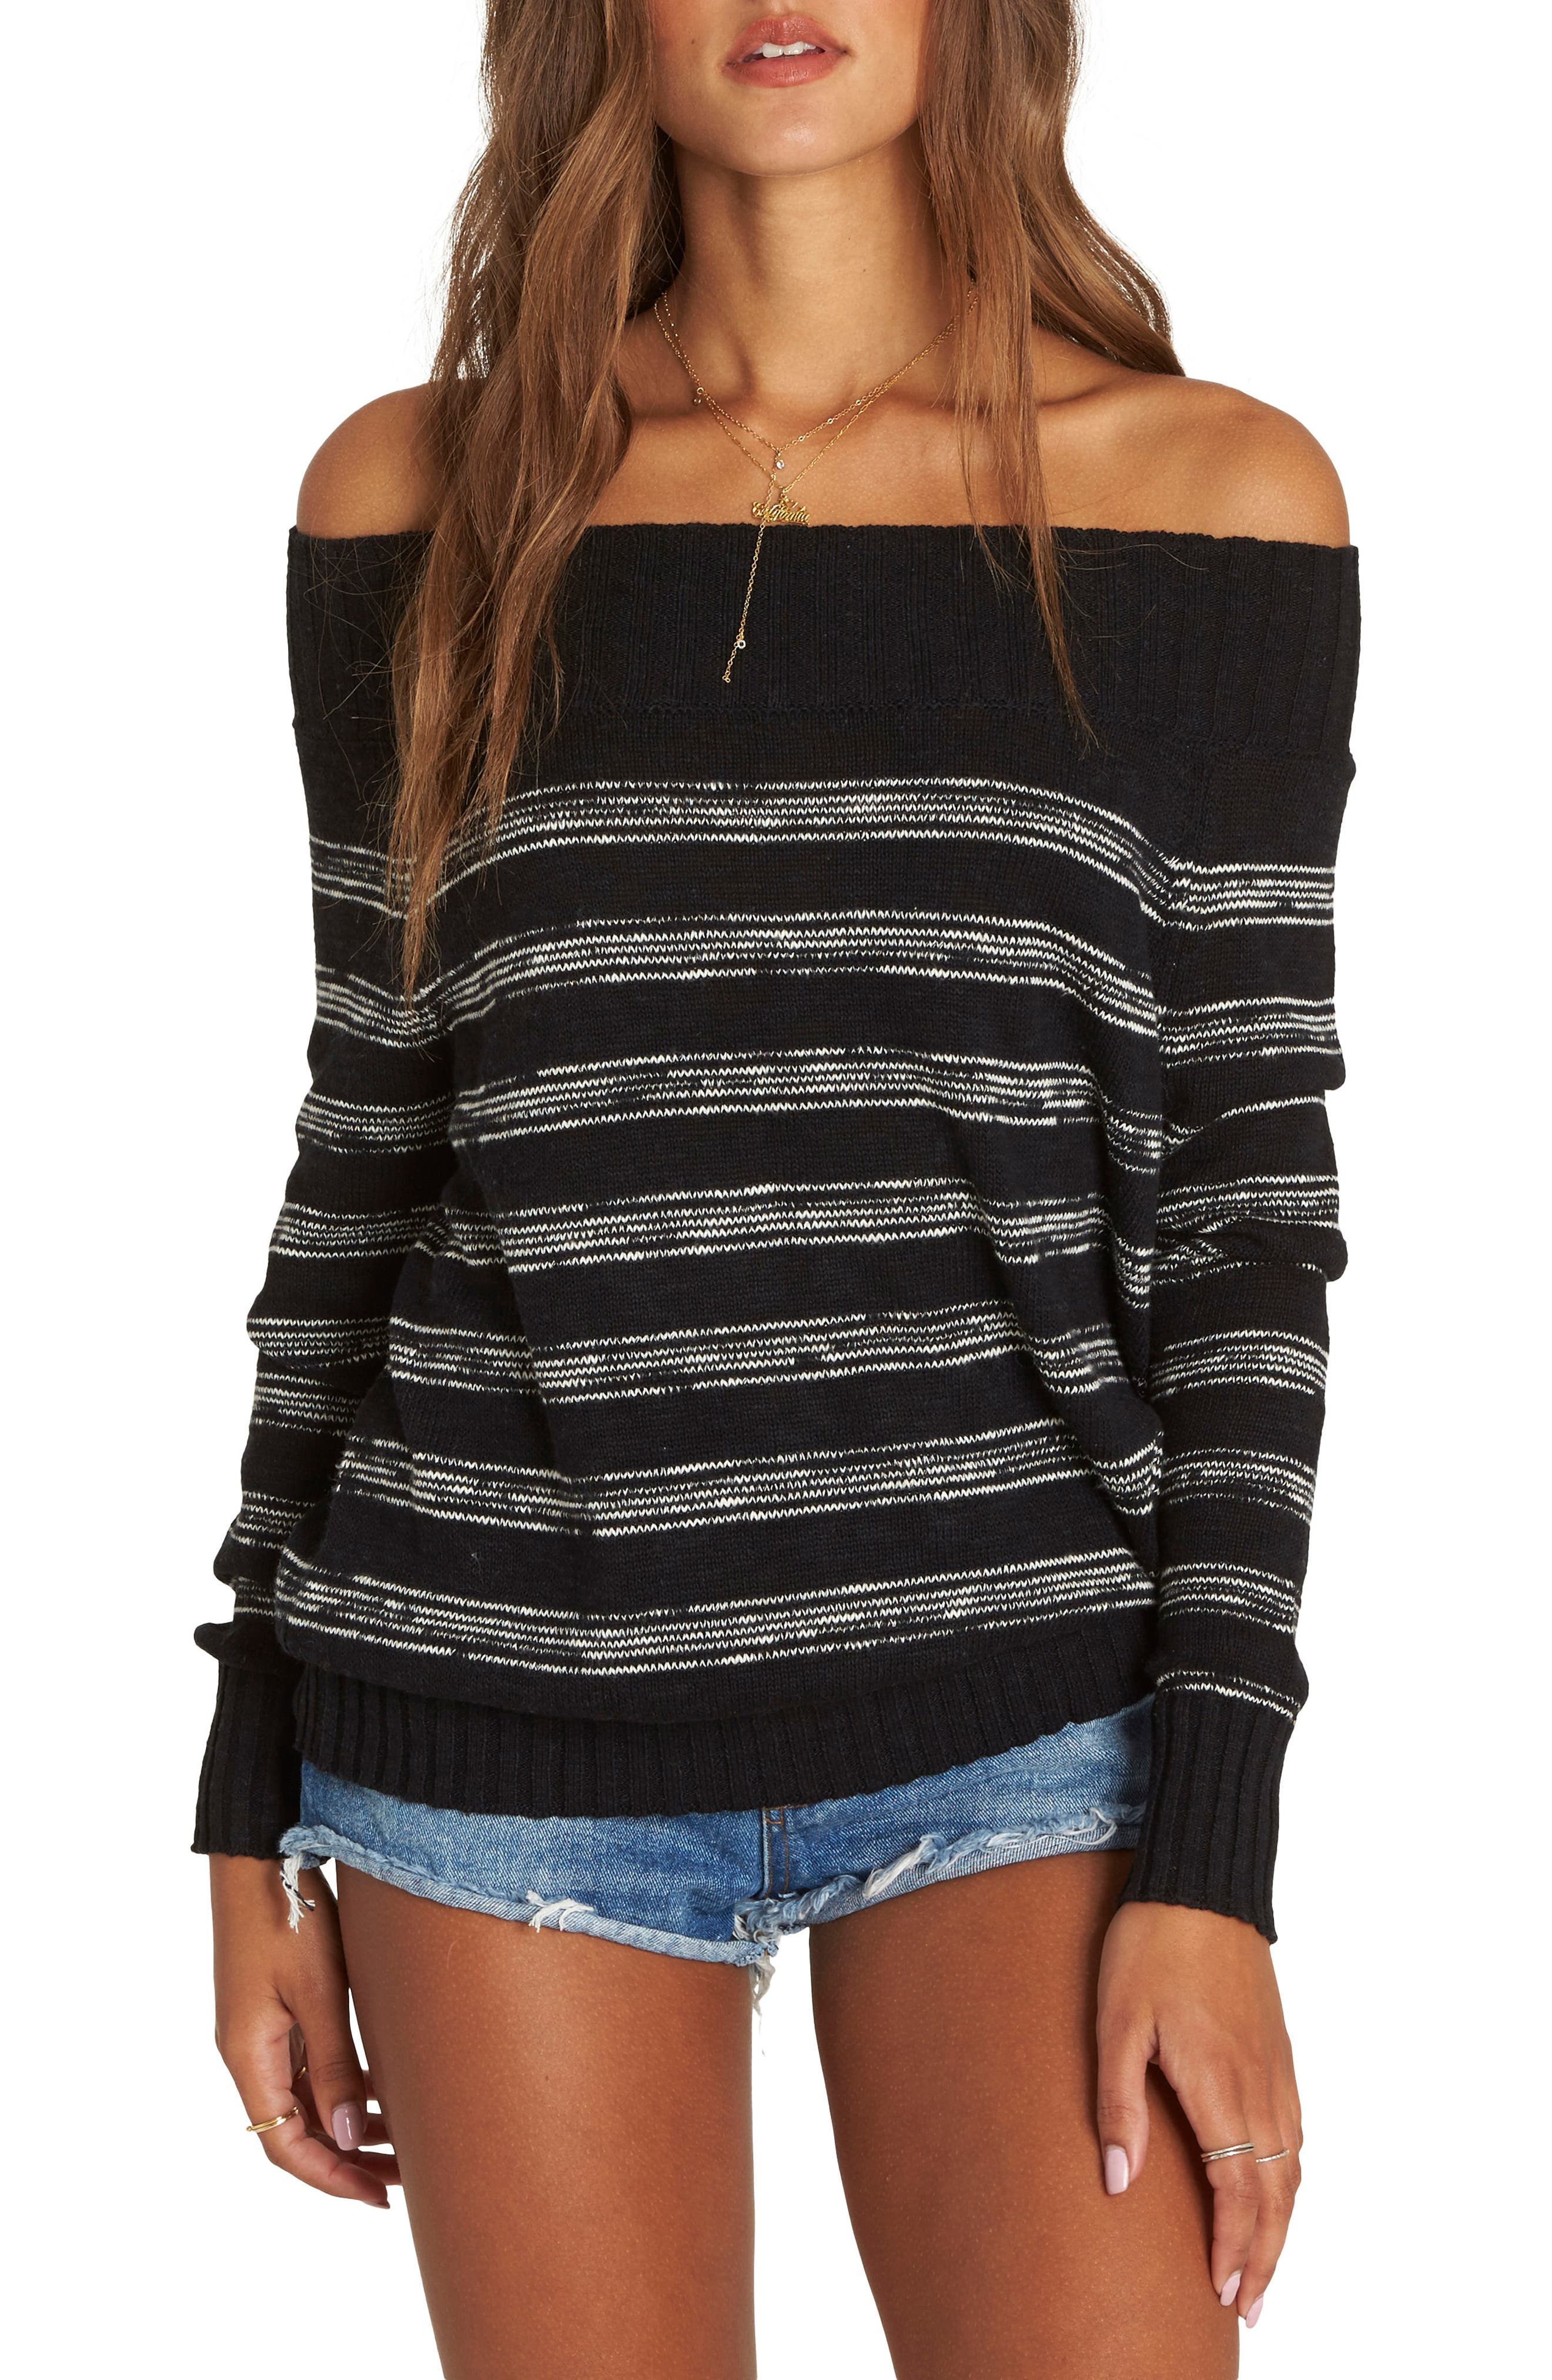 Snuggle Down Off the Shoulder Sweater,                             Main thumbnail 1, color,                             Black